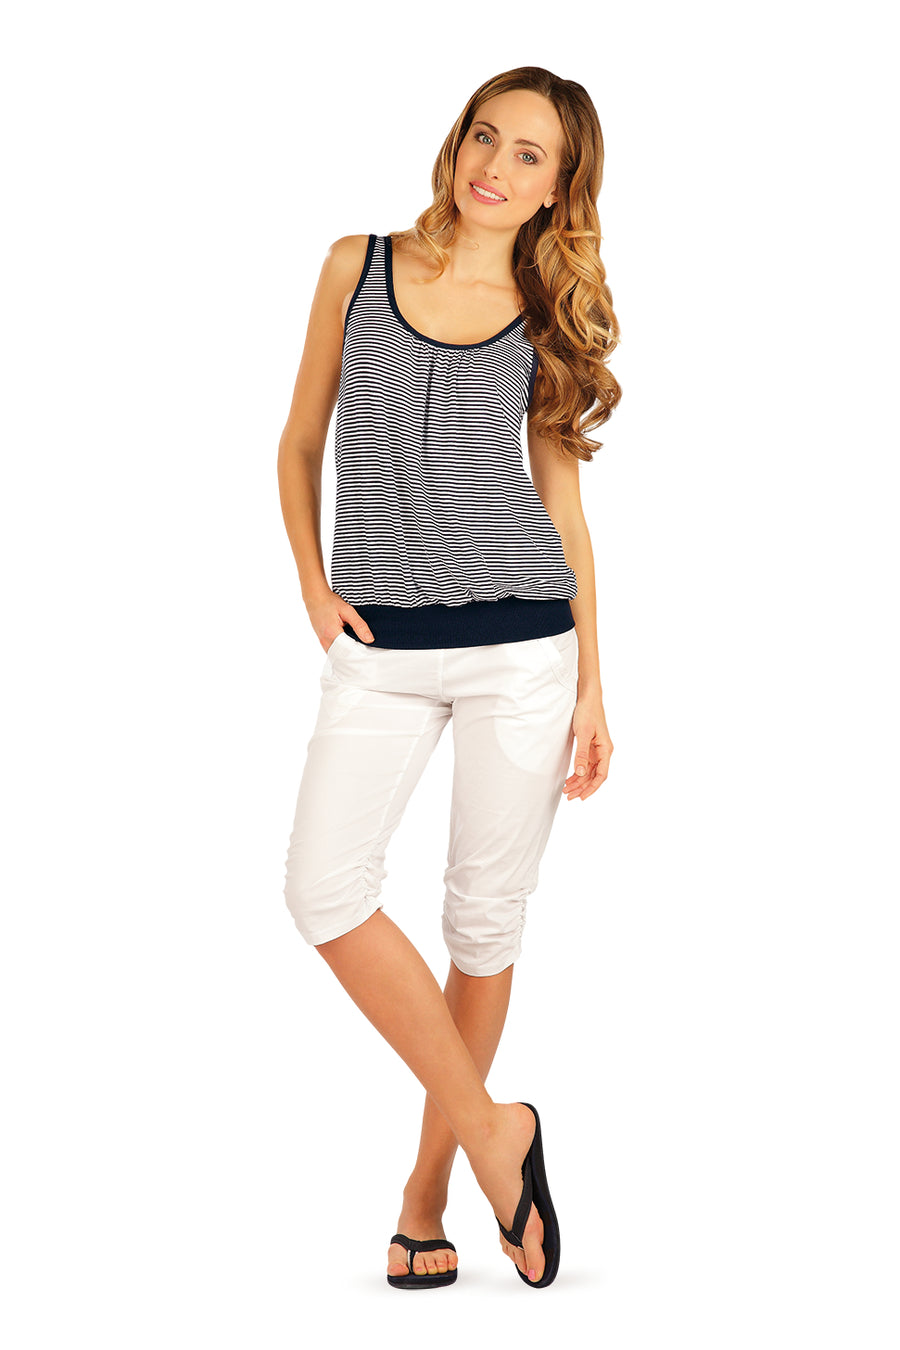 Navy Blue Stripes Tank - onelike